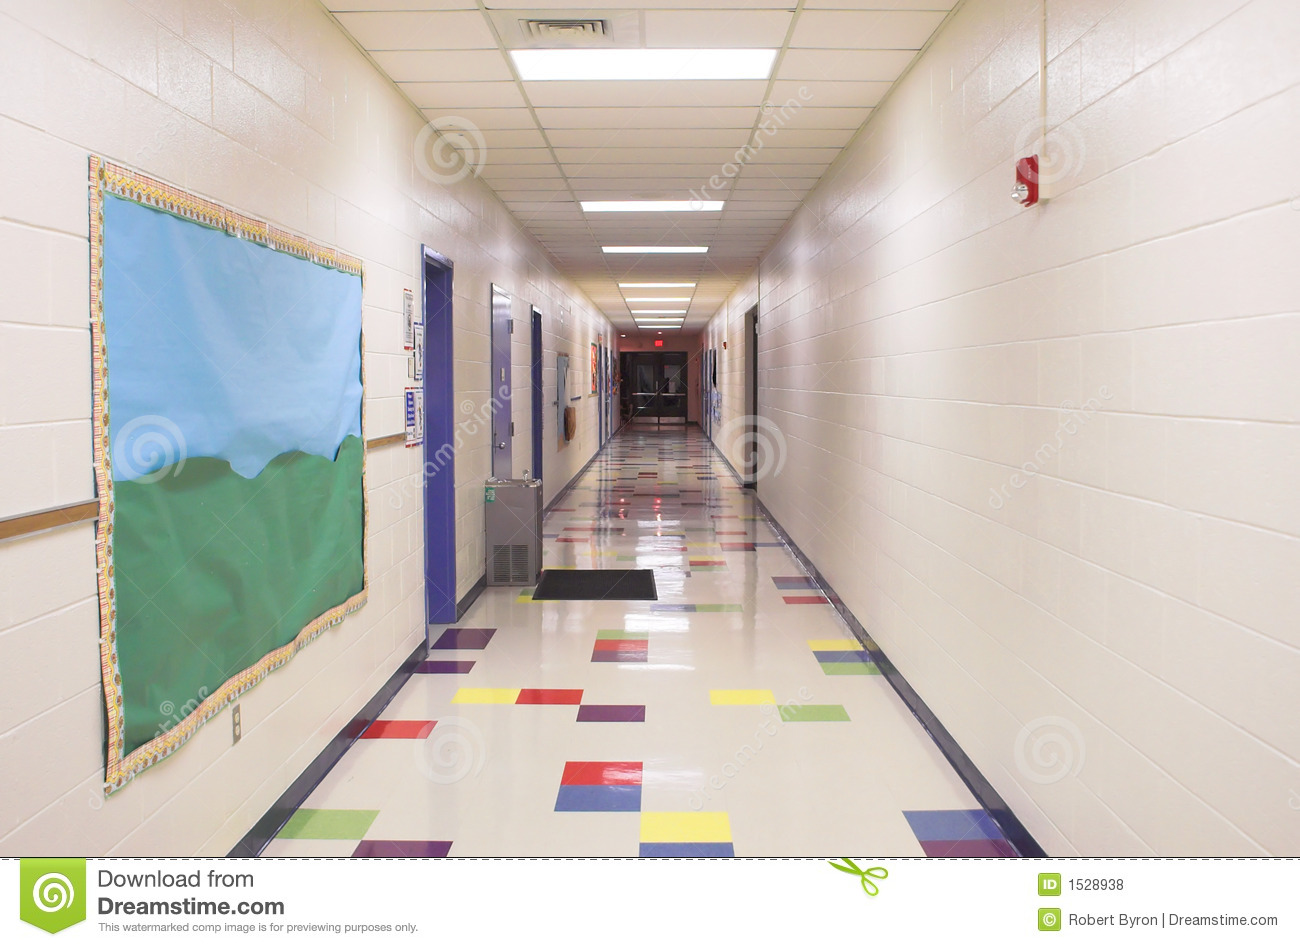 School Hallway Royalty Free Stock Photos - Image: 1528938